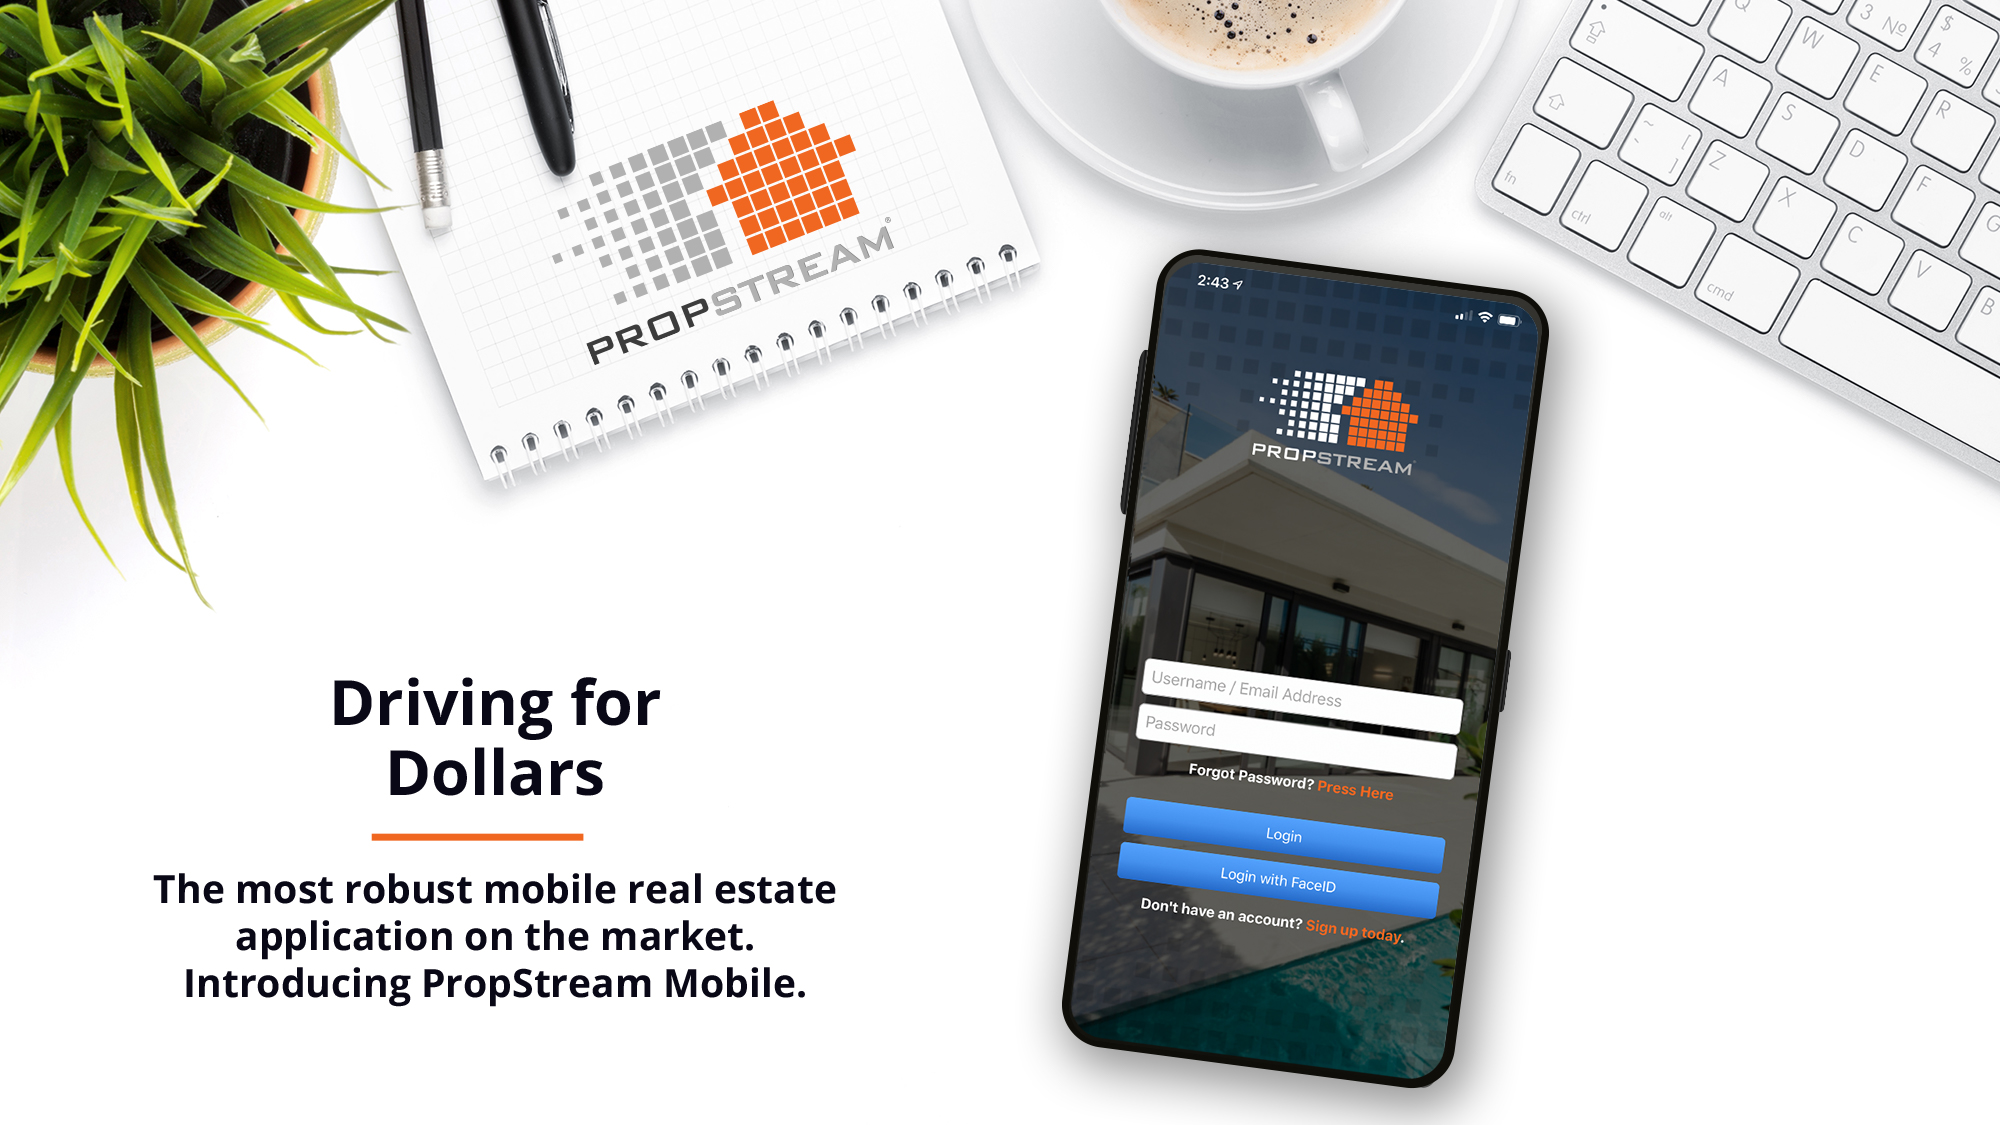 Driving for Dollars with PropStream Mobile